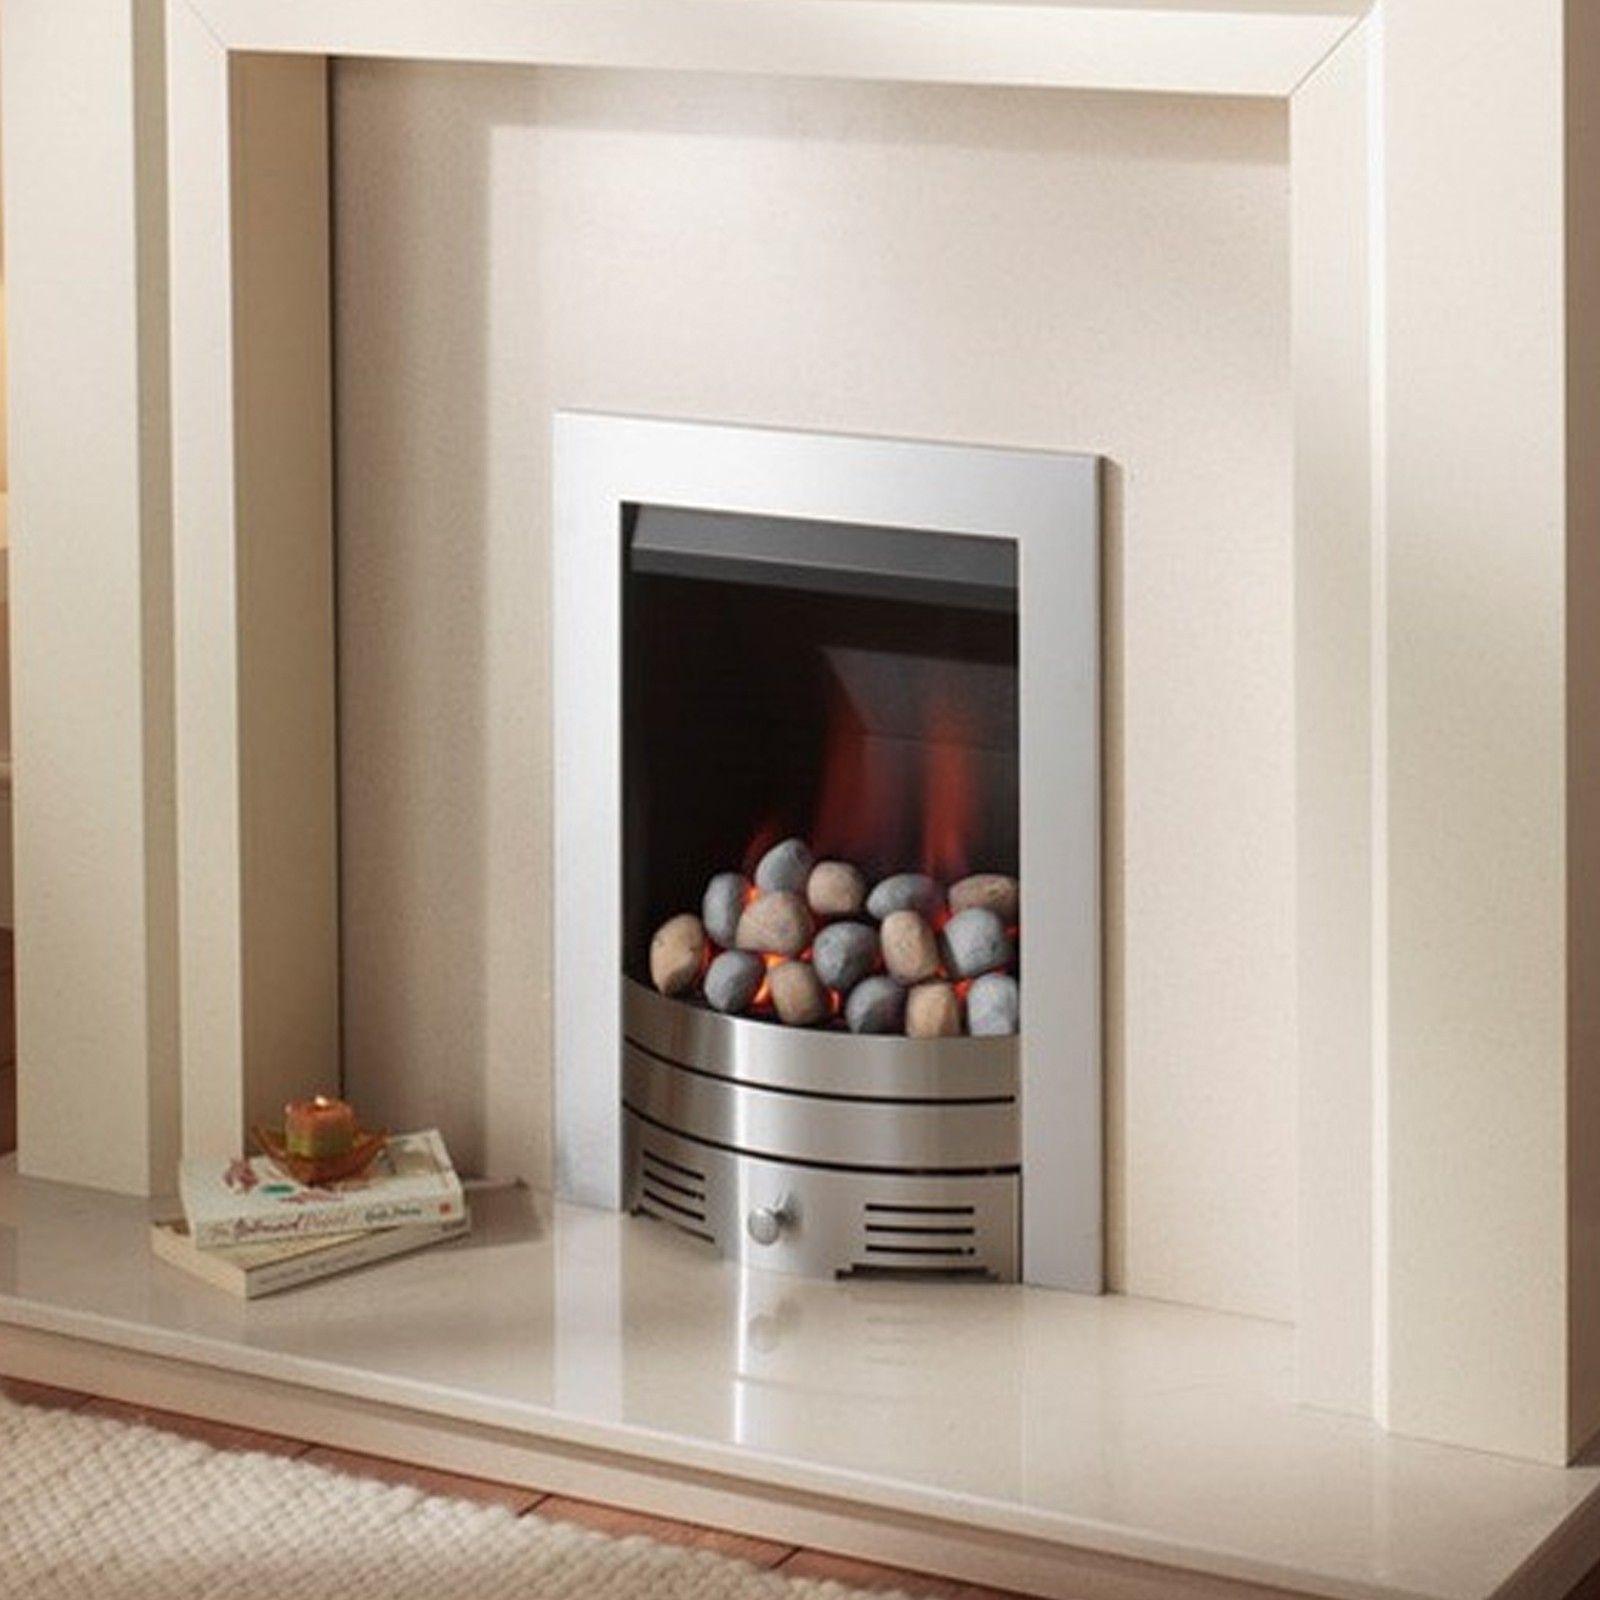 Chrome Fire Crystal Fires Slimline Radiant Contemporary